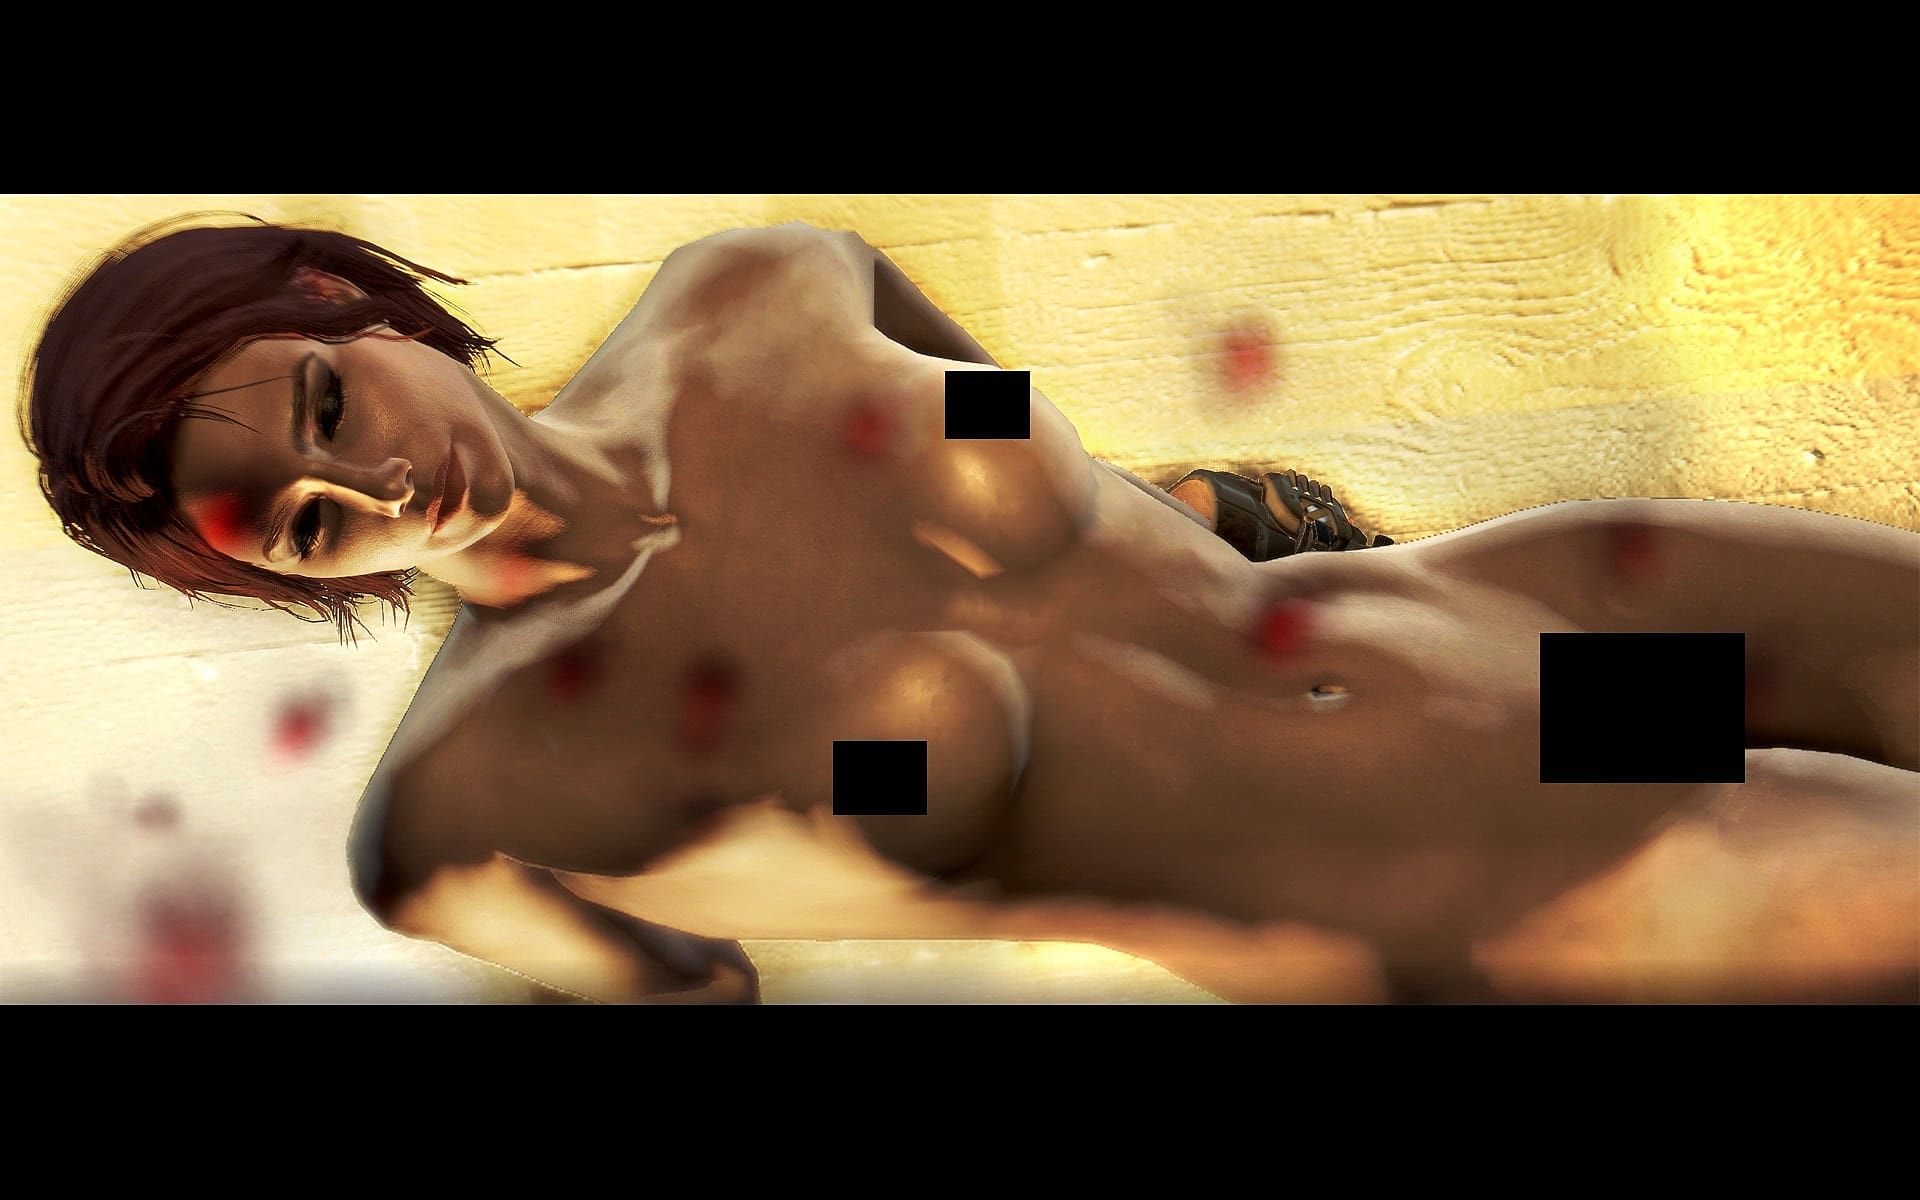 The Best Nsfw Nude Fallout 4 Mods And Where To Find Them -9182